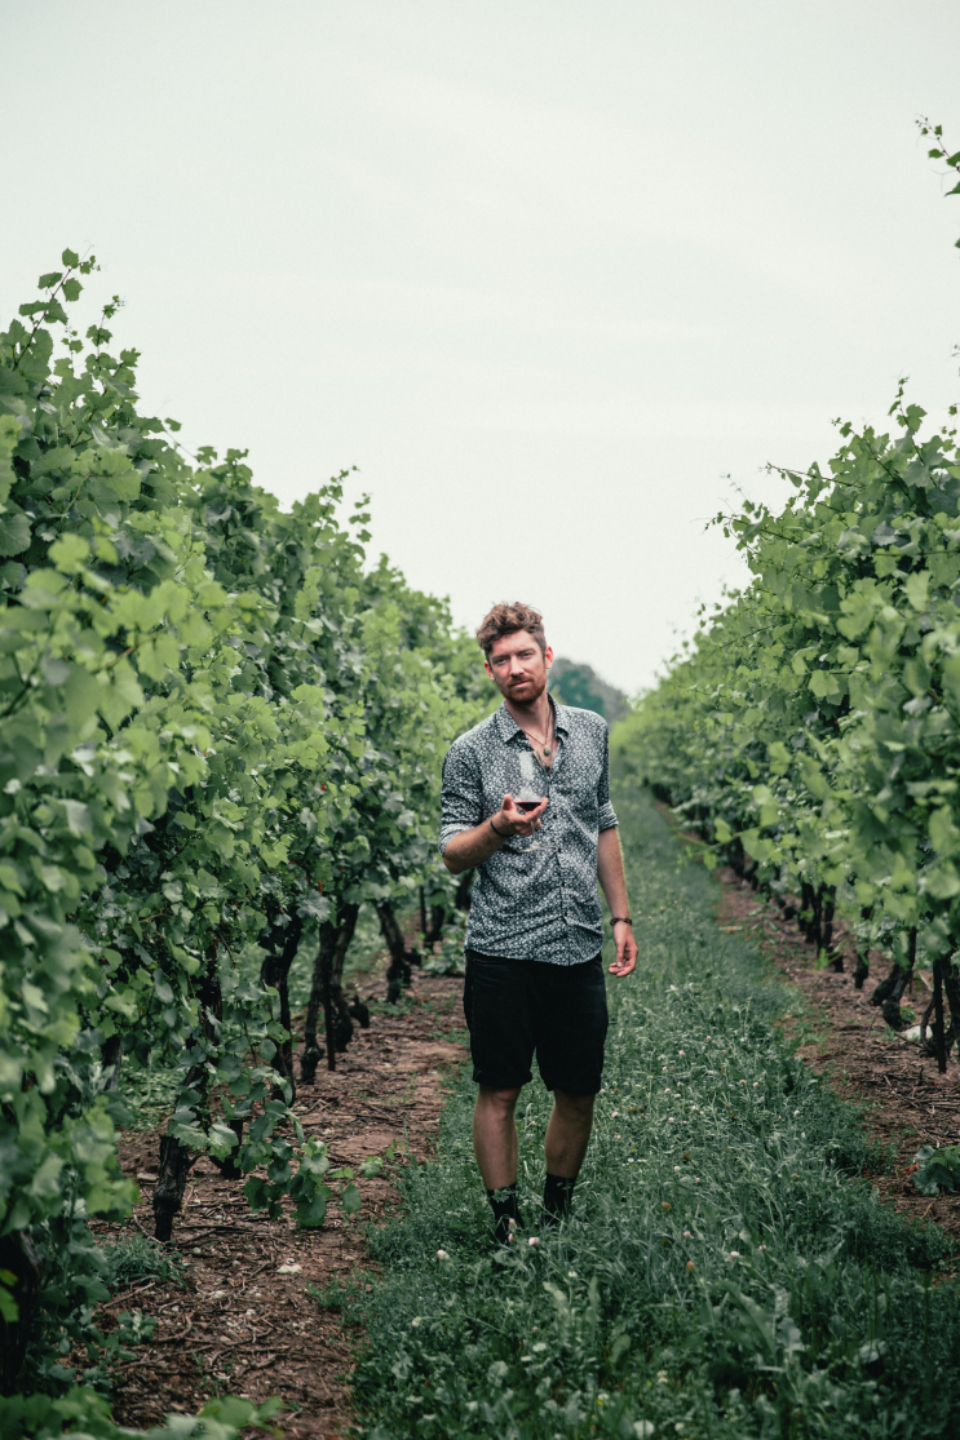 man wine vineyard nature outdoors person alcohol drink casual plants vegetation harvest agriculture countryside farm grape leisure male ripe rural summer taste